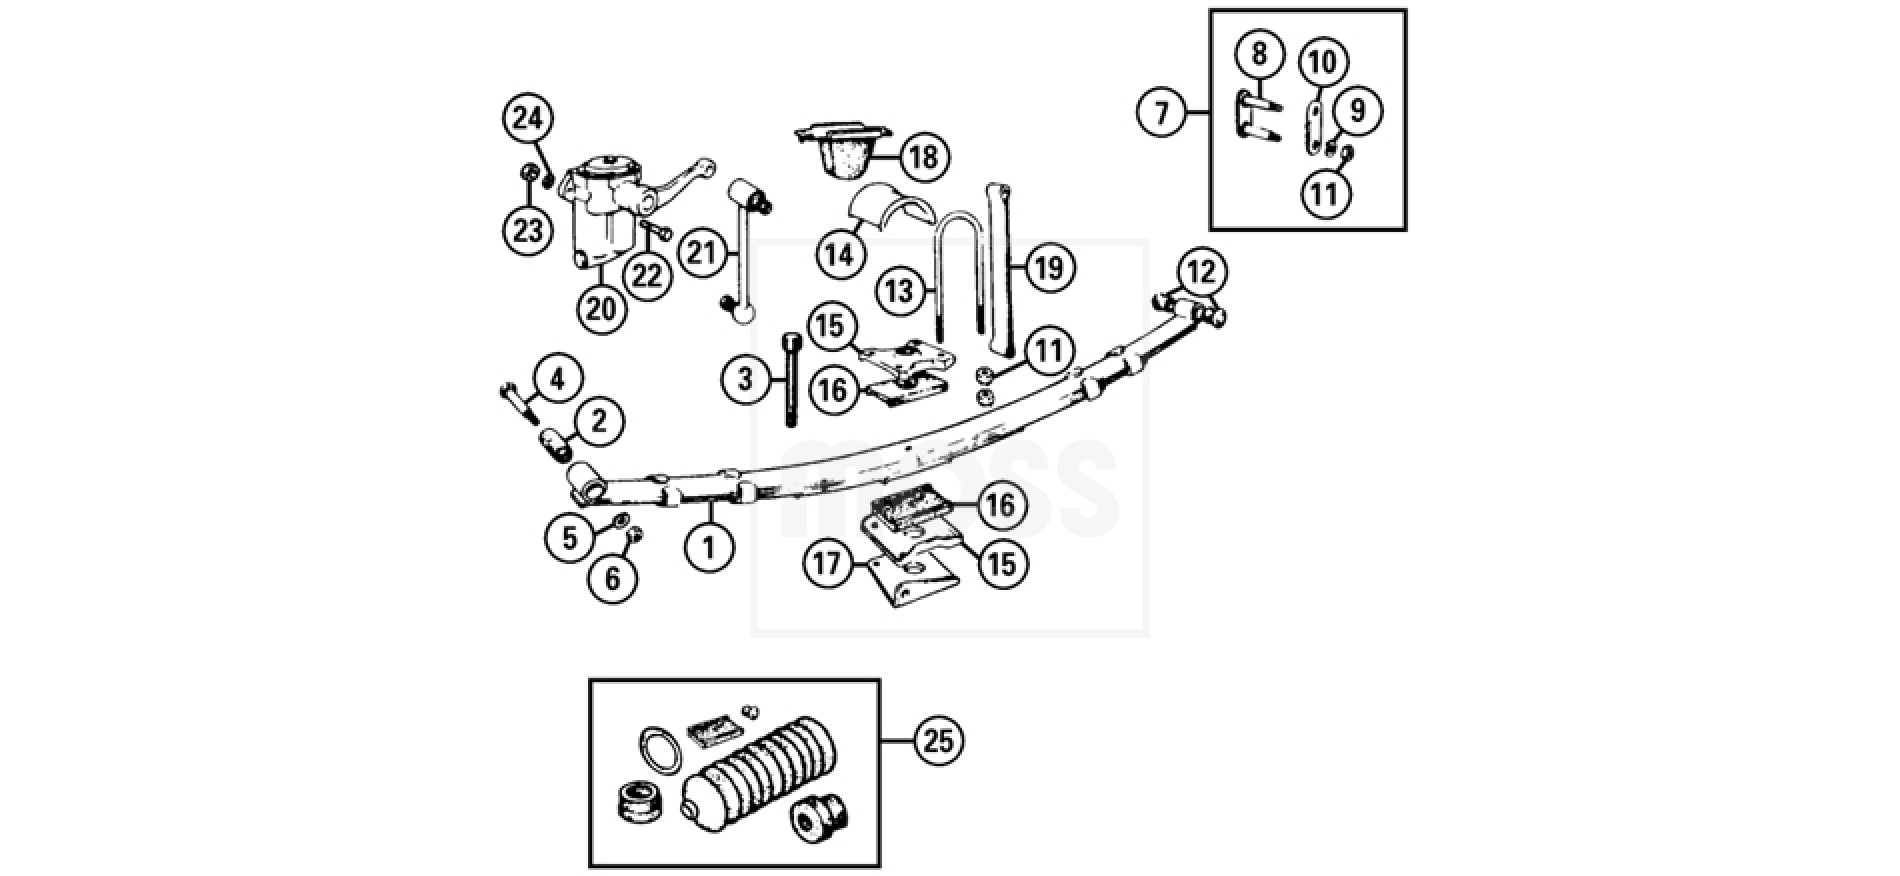 99 Xjr Bad Fuel Pump Work Around 31160 moreover 71822 Td5 Wont Start No Matter What likewise Ford Probe Fuel Filter Location furthermore Land Rover Discovery 2 Fuse Box Diagram further 4ohab 99 Chevy Suburban Electronic Flasher I Couldn T Find Dash. on land rover discovery fuel pump relay location